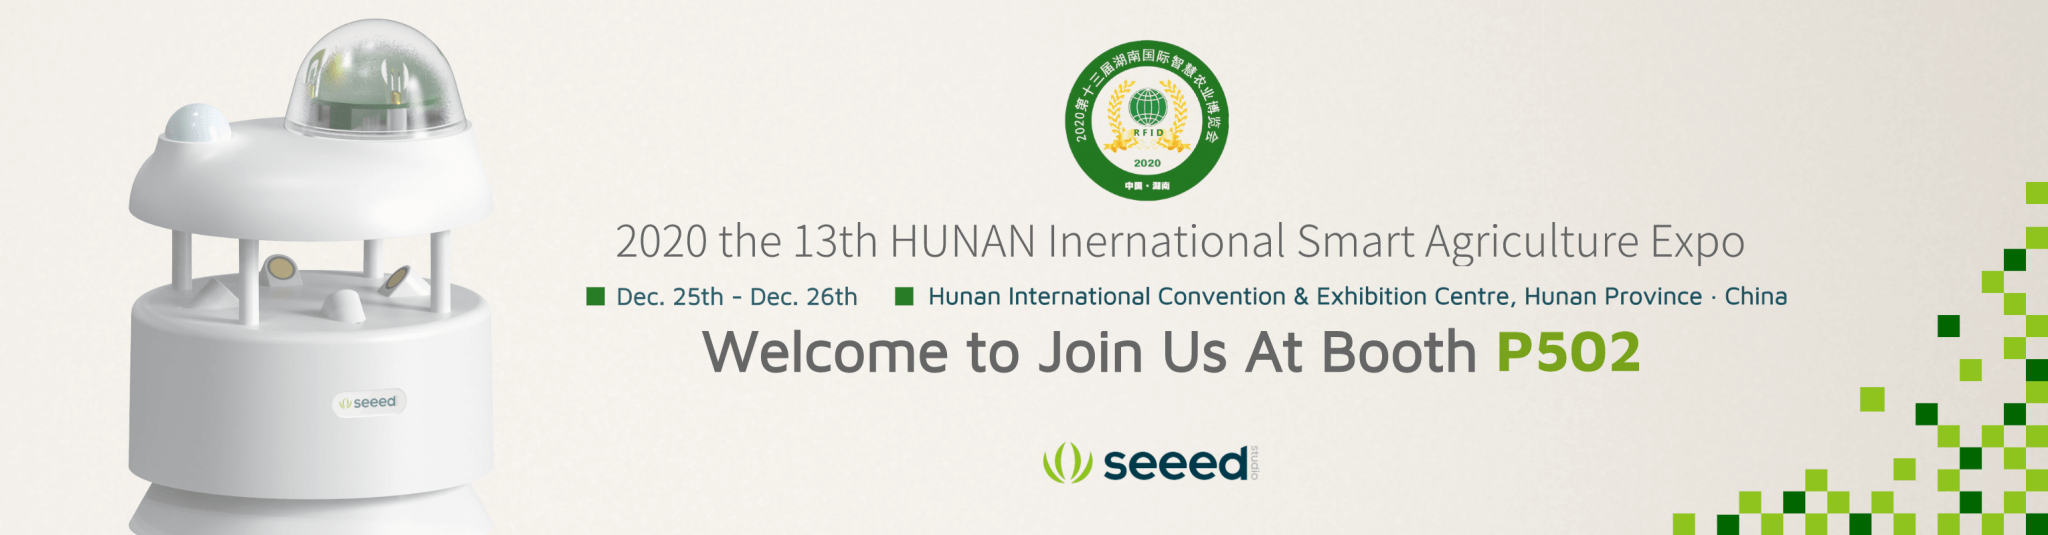 Seeed Attends Hu'nan International Smart Agriculture Expo to Showcase Latest IIoT Products